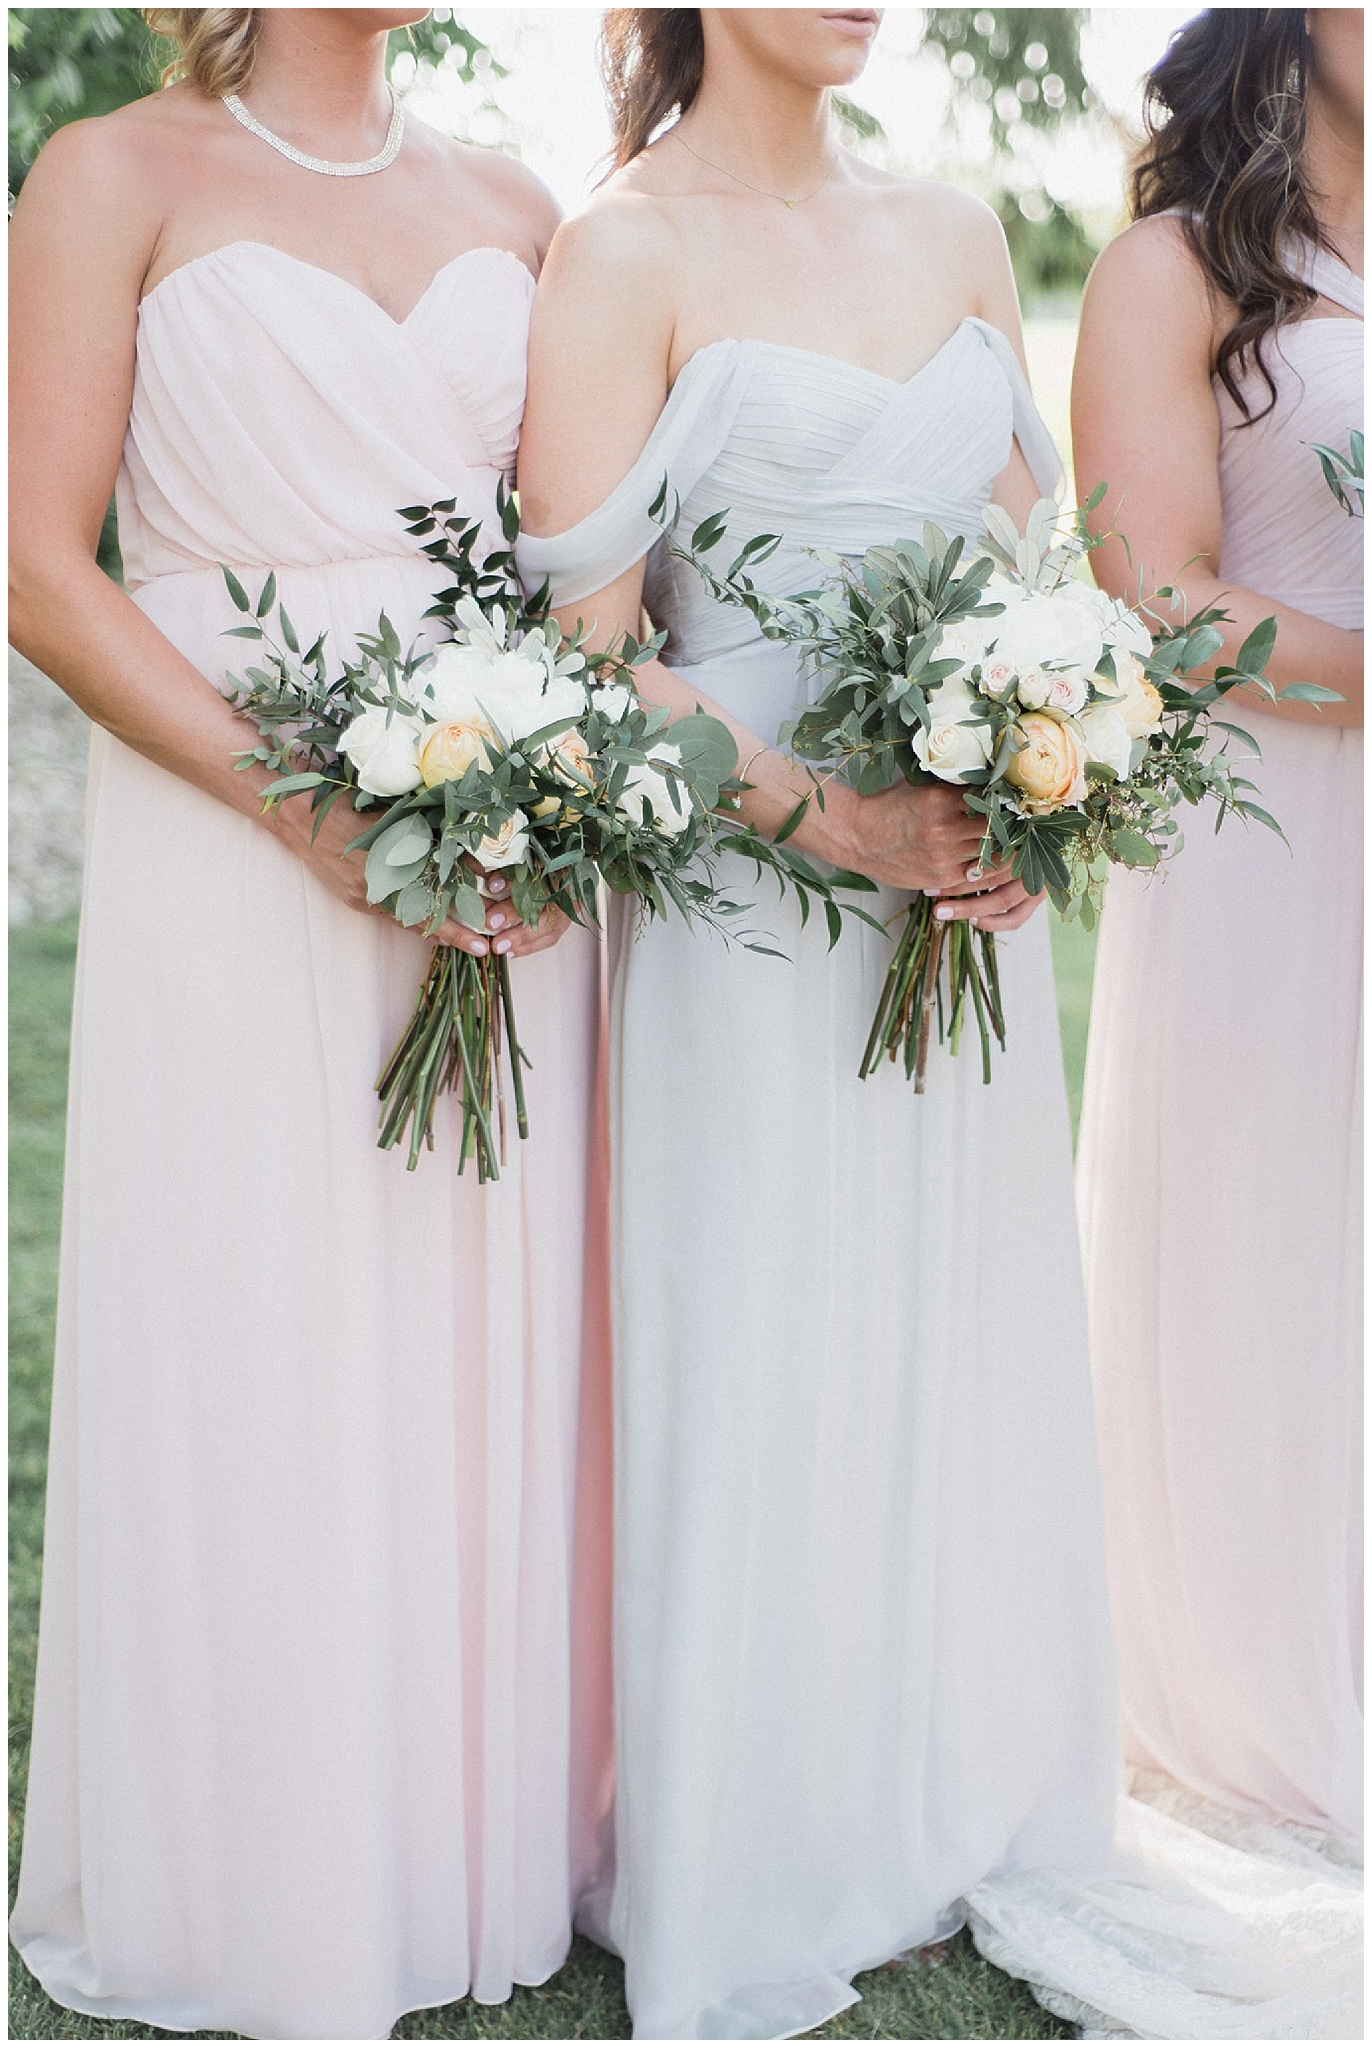 Mismatched pastel Amsale bridesmaids dresses with hand tied bouquets | Tent wedding on family farm in Guelph, Ontario by Jenn Kavanagh Photography